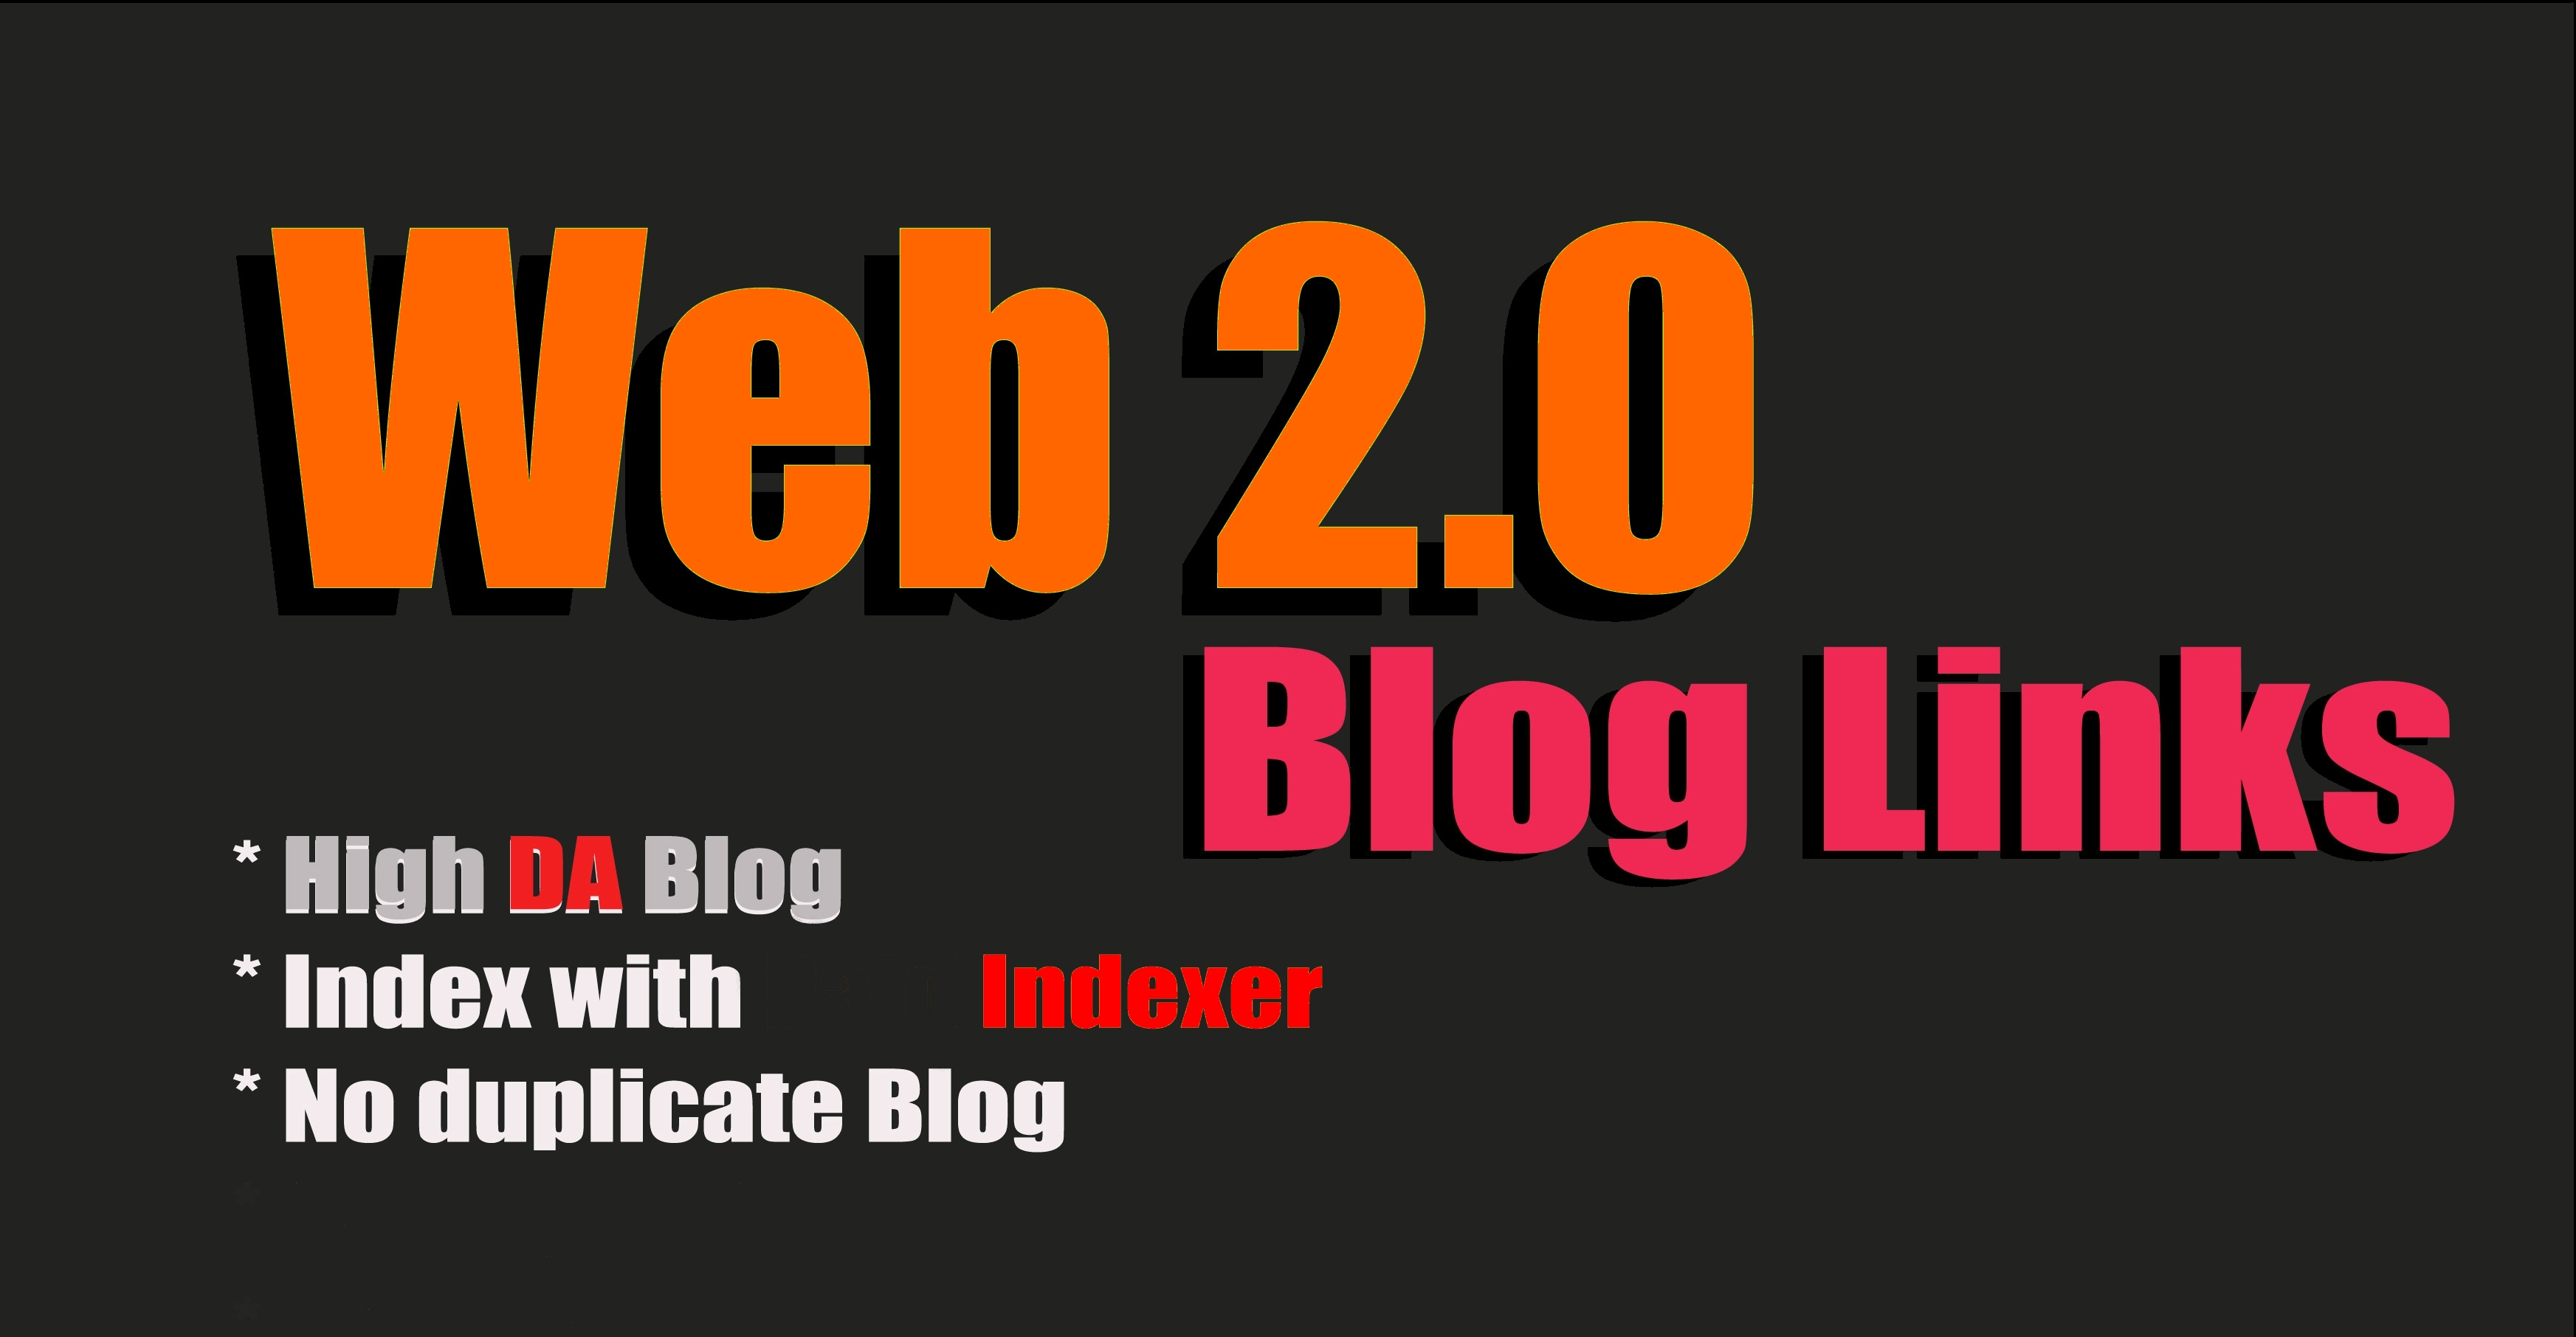 Build 55+ High Quality Web2.0 Blogs high DA+40